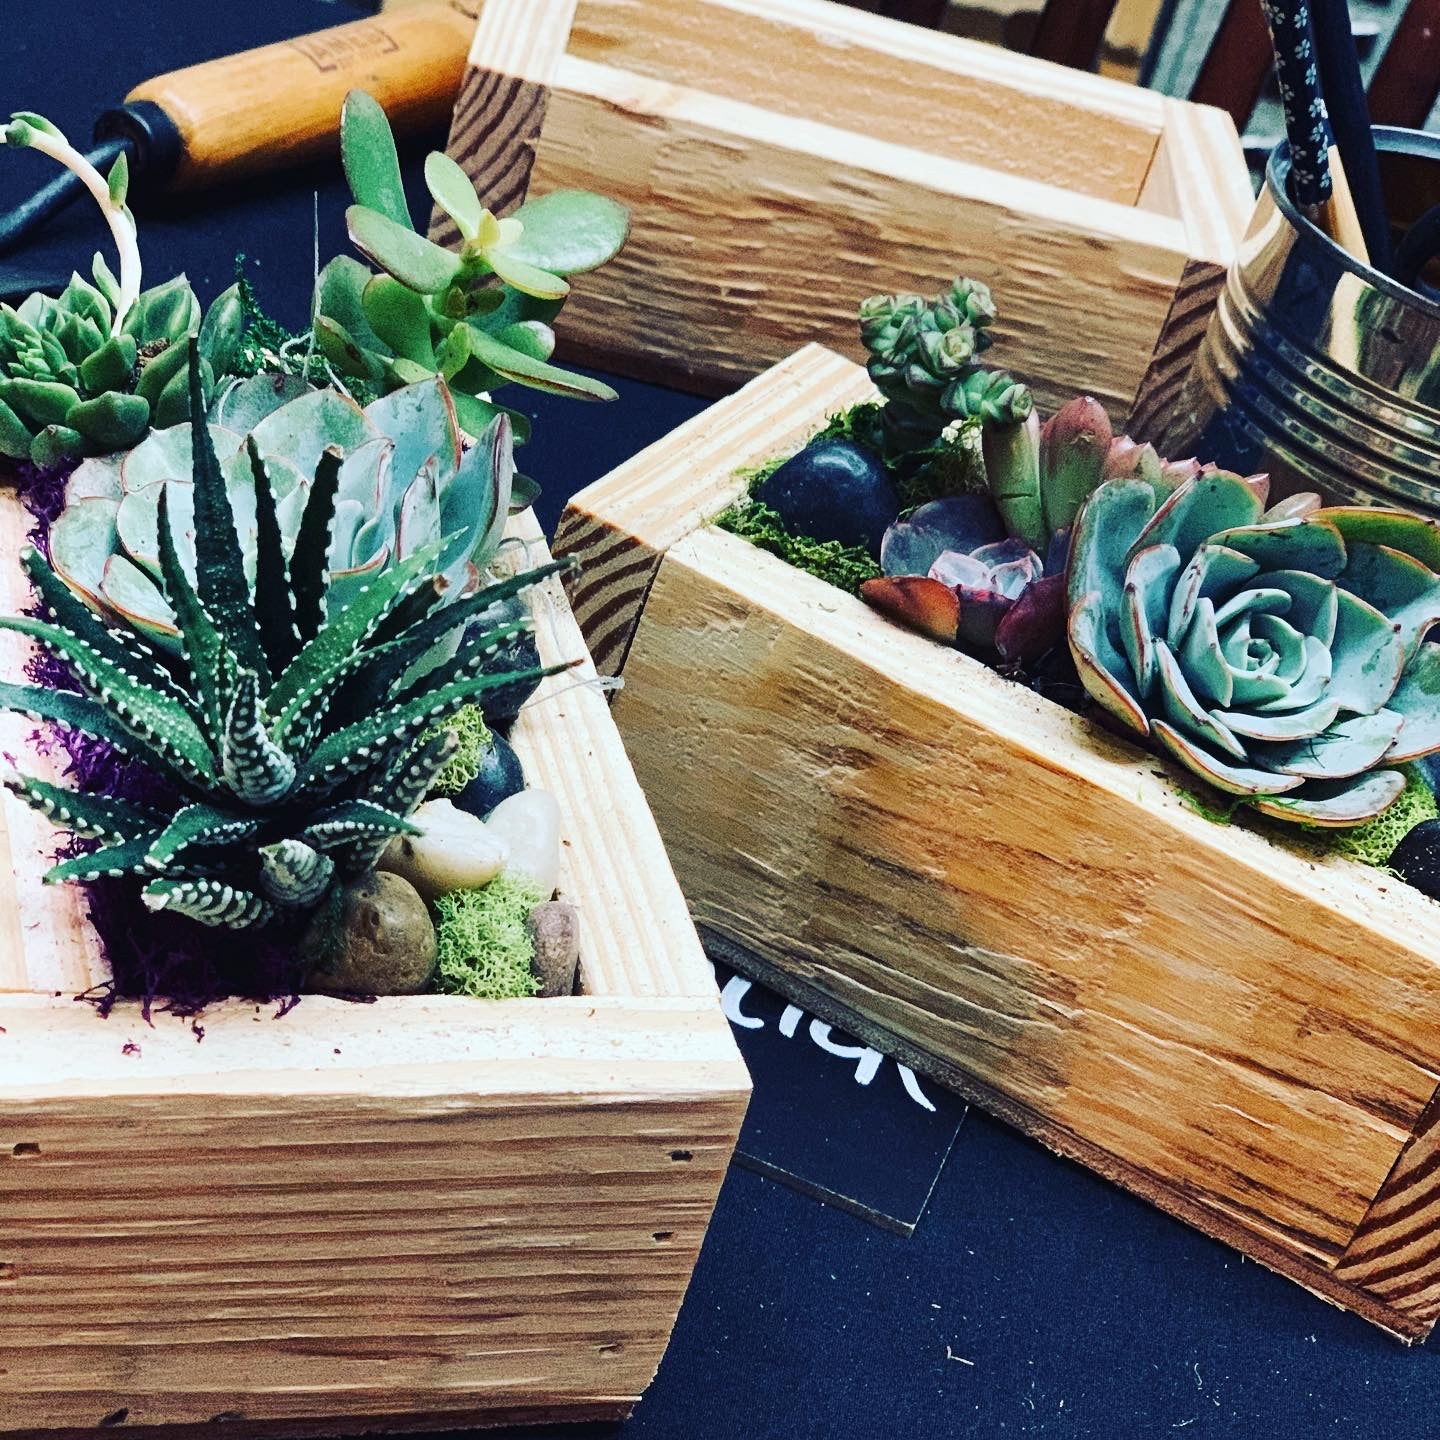 4x6 Take and Make DIY KIT in repurposed wooden planter